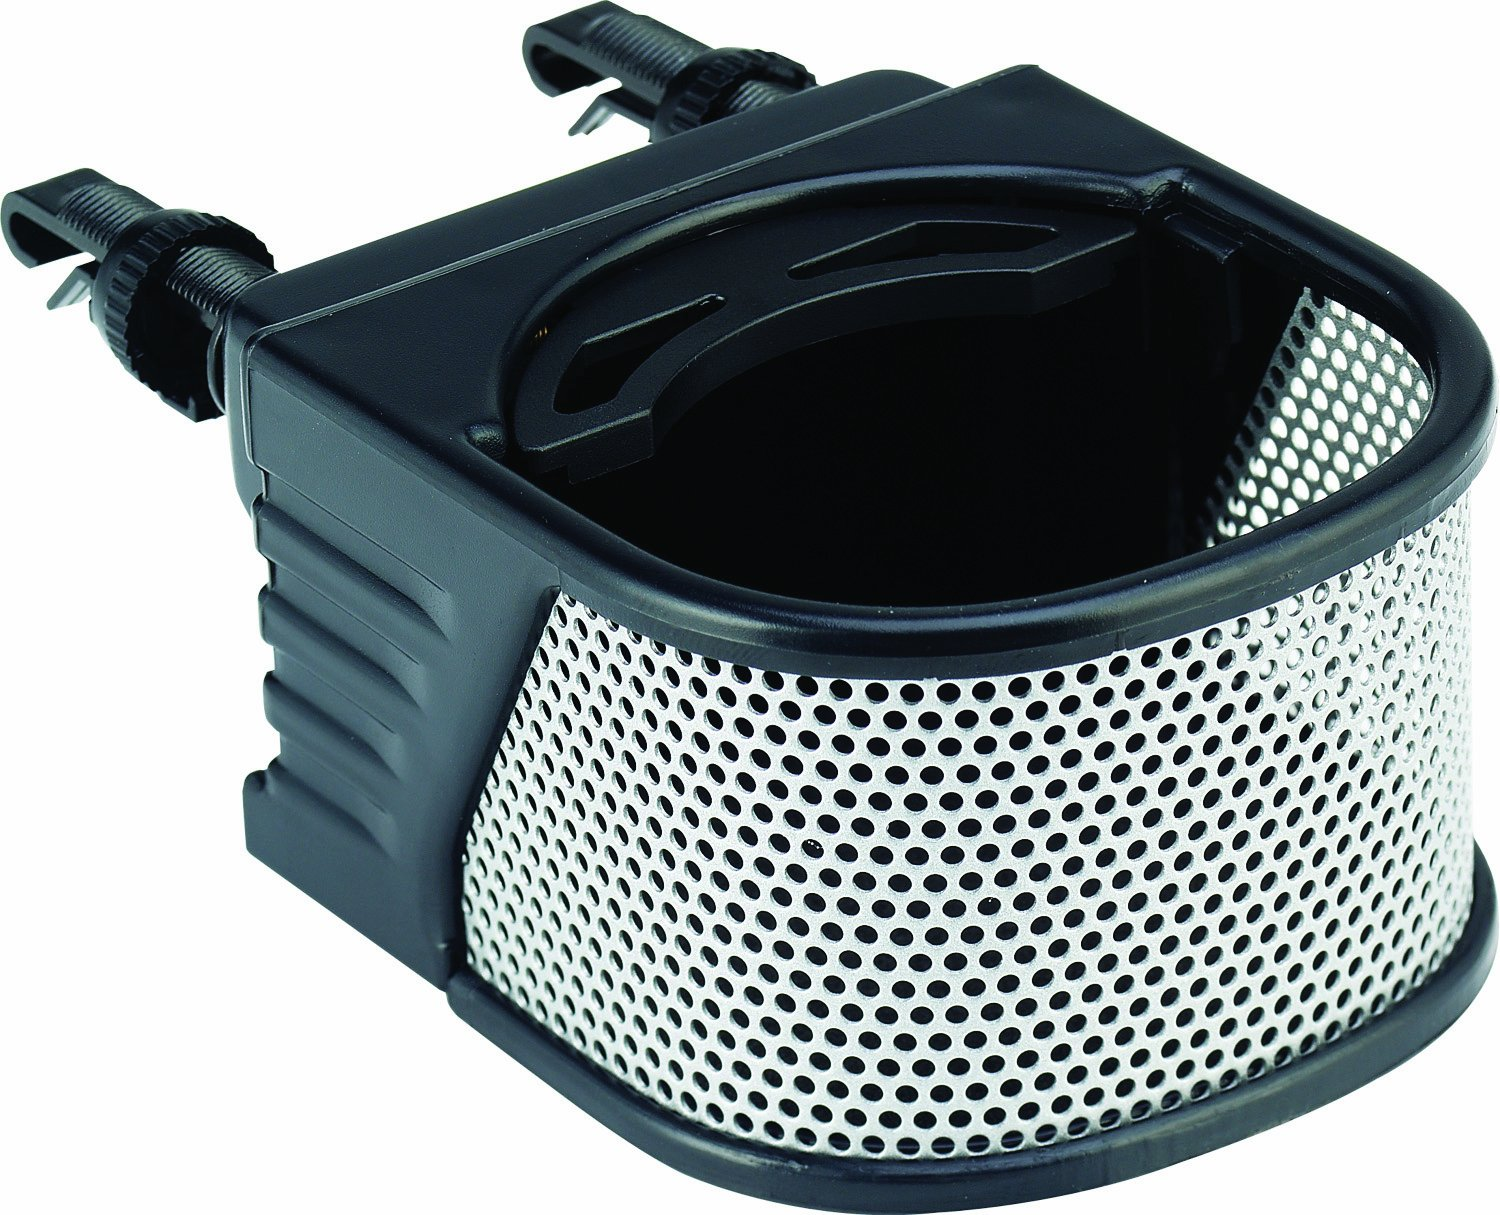 Bell Automotive 22-1-05407-8 Air Vent Drink Holder